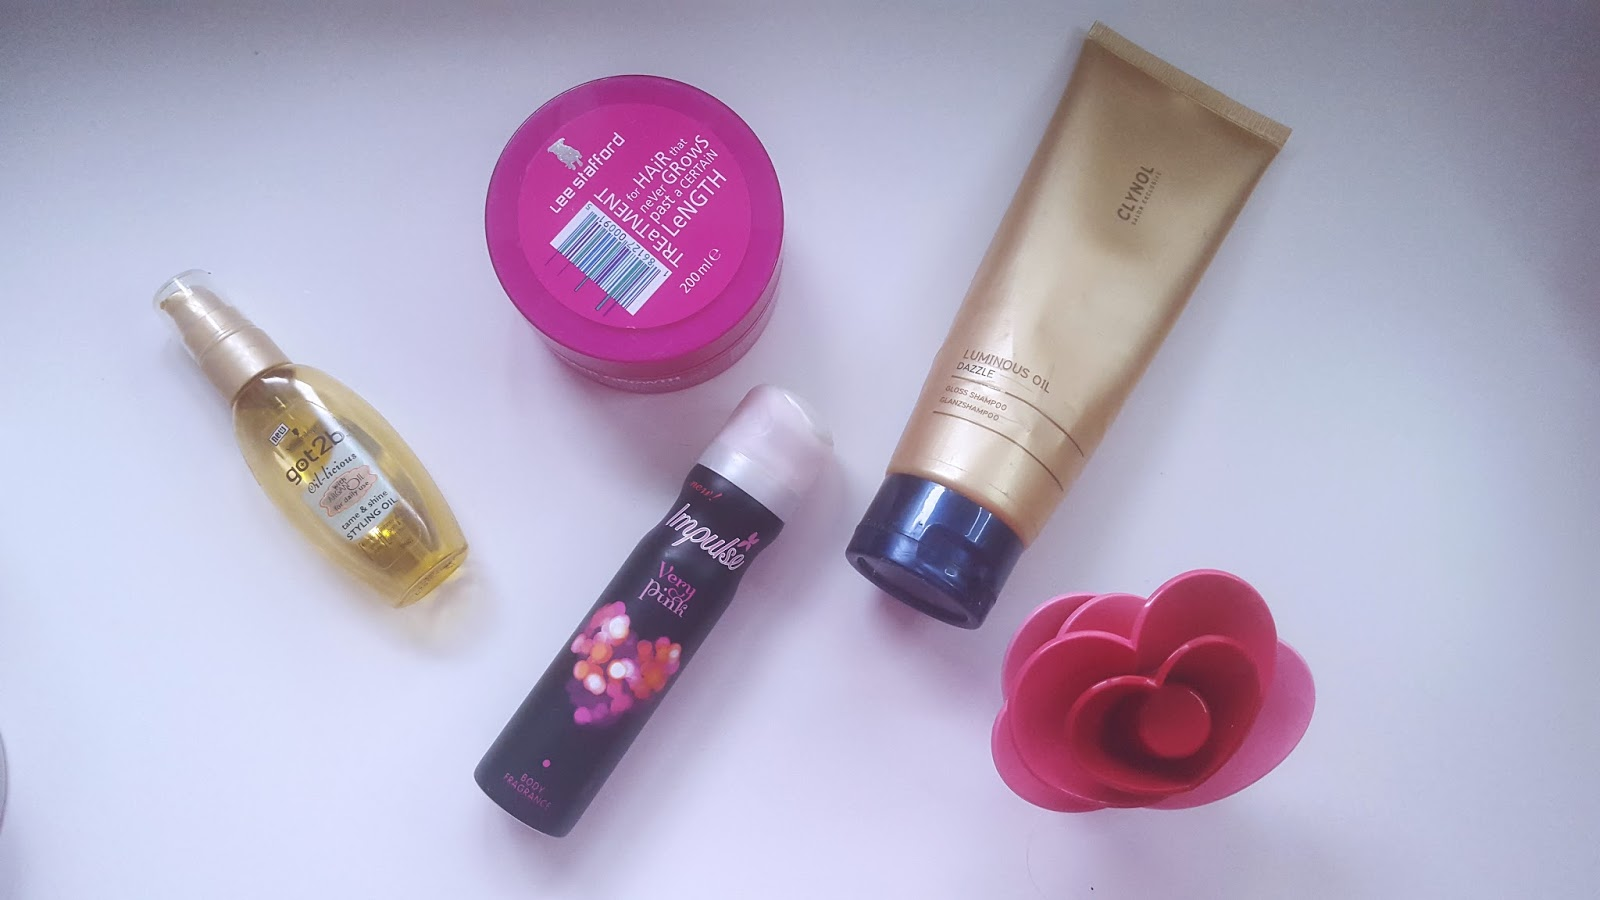 Schwarzkopf Got2B Oilicious Impulse Very Pink Clynol Luminious Oil Justin Bieber Perfume Lee Stafford Growth Mask